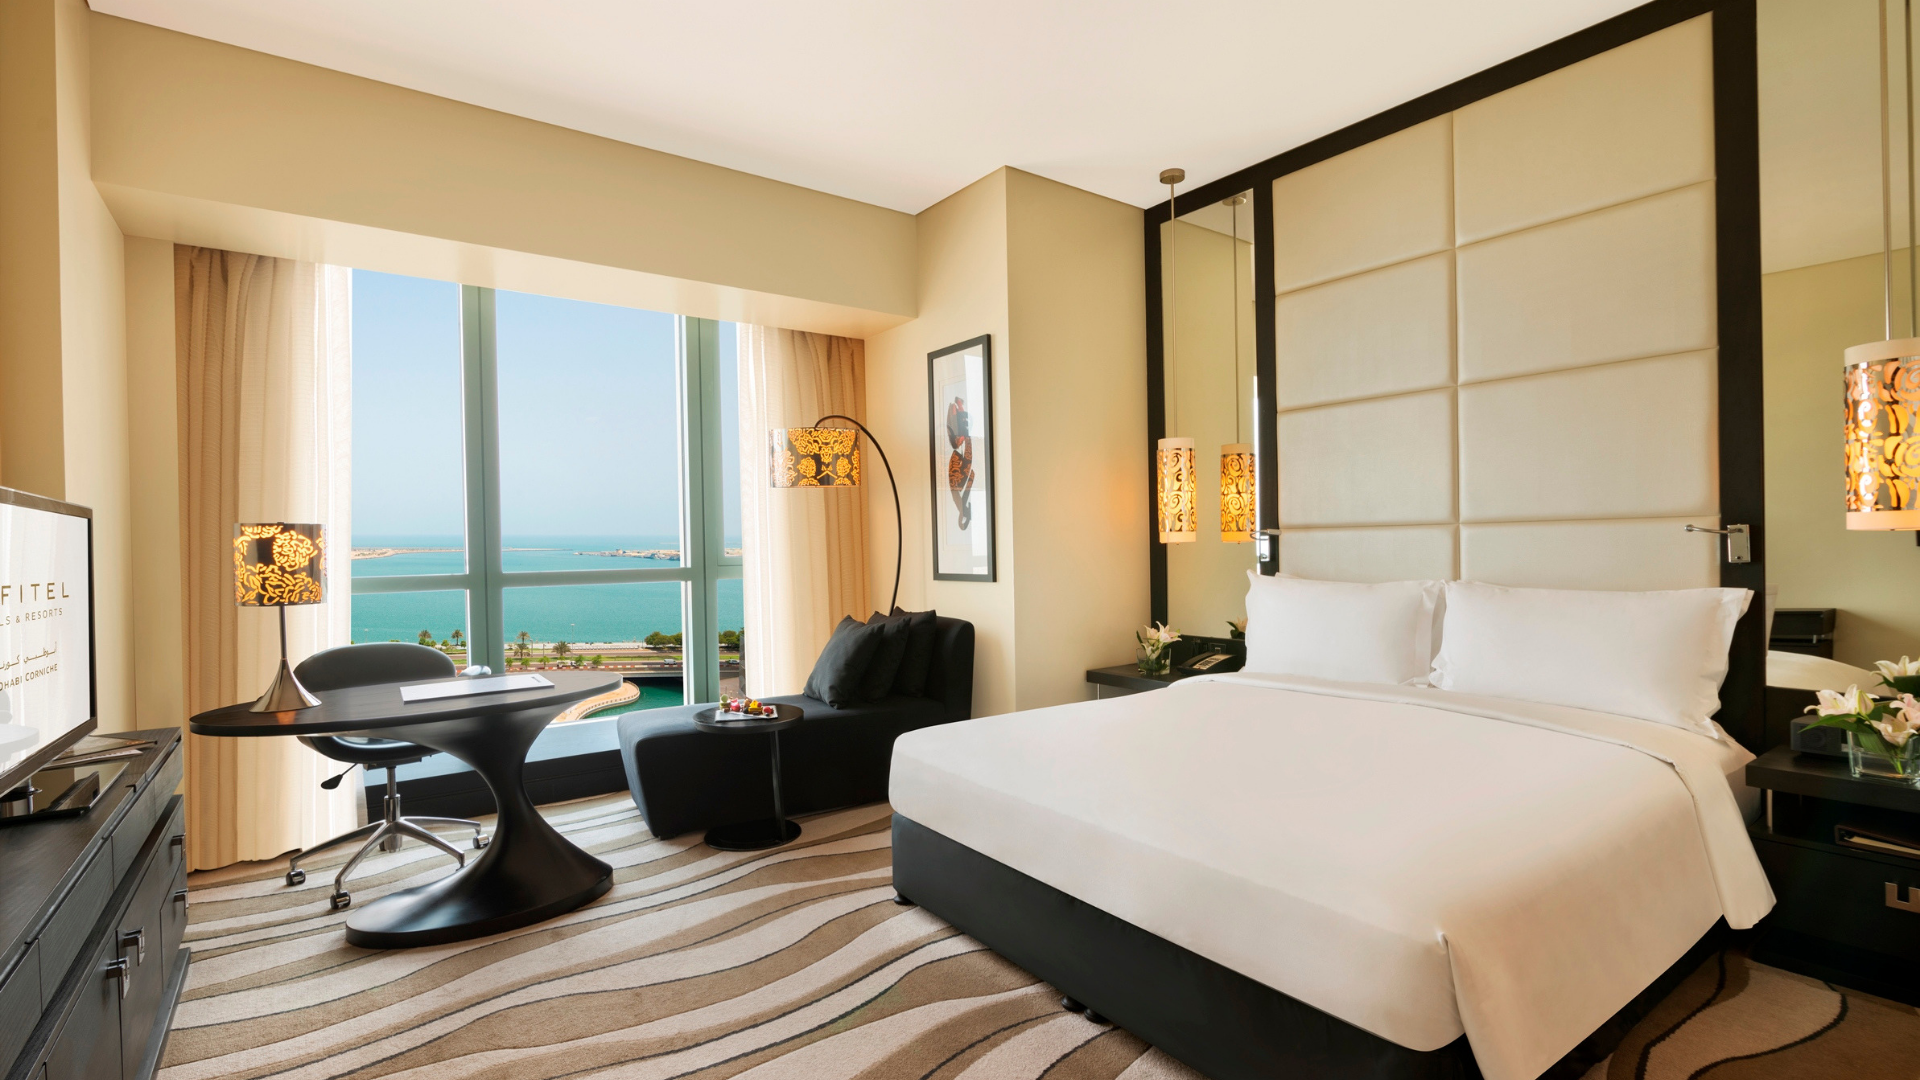 luxury-room-club-sofitel-1-king-size-bed-sea-view